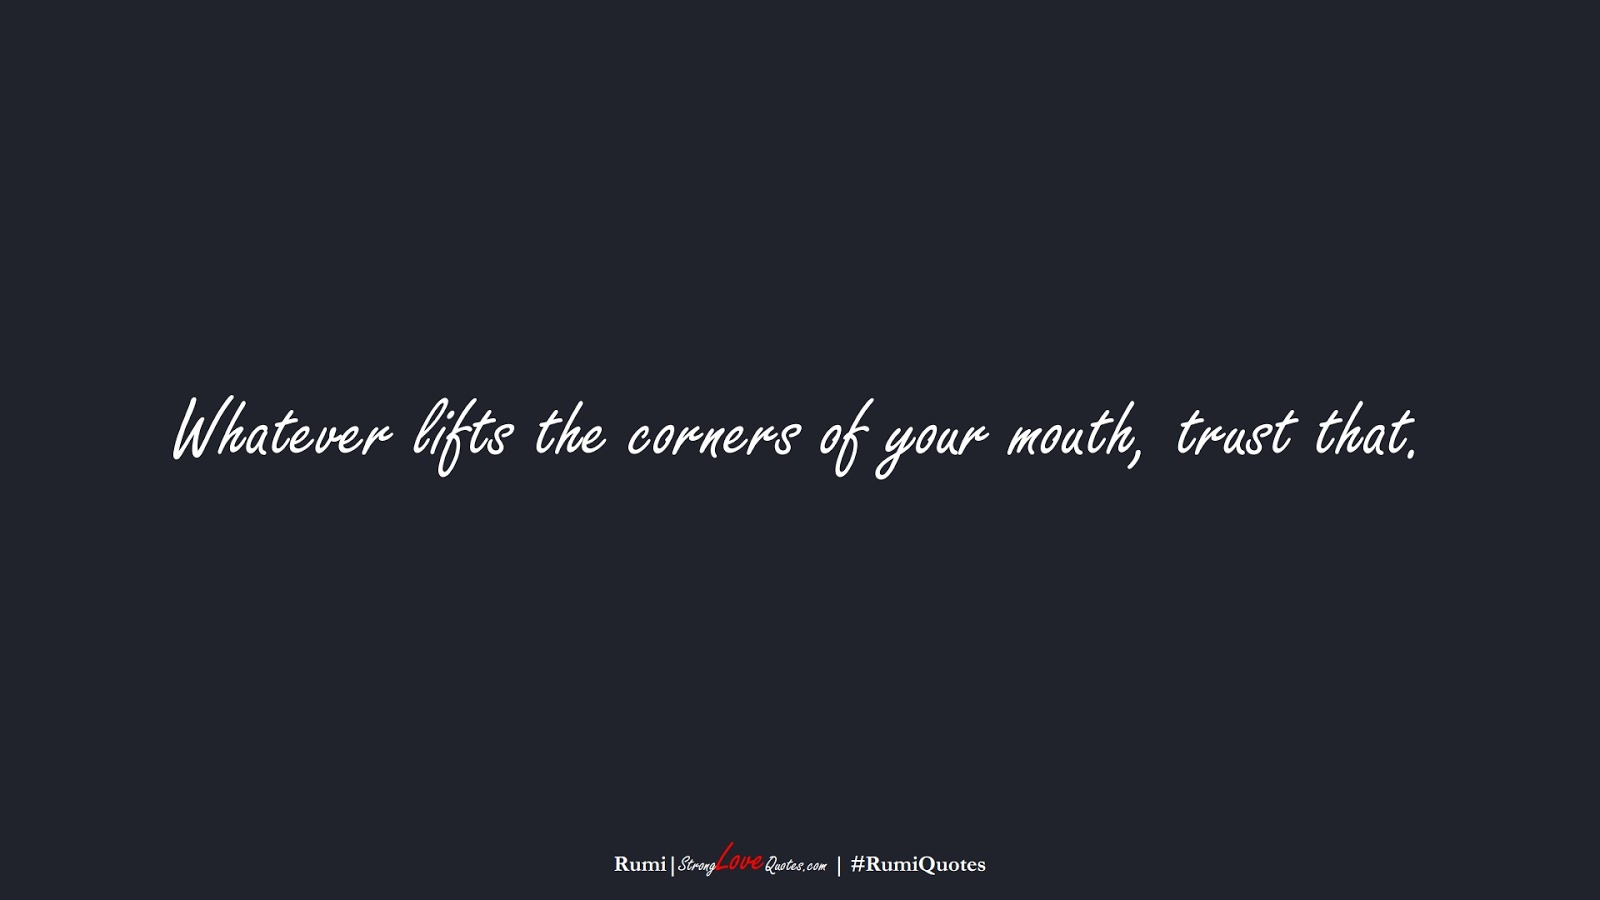 Whatever lifts the corners of your mouth, trust that. (Rumi);  #RumiQuotes